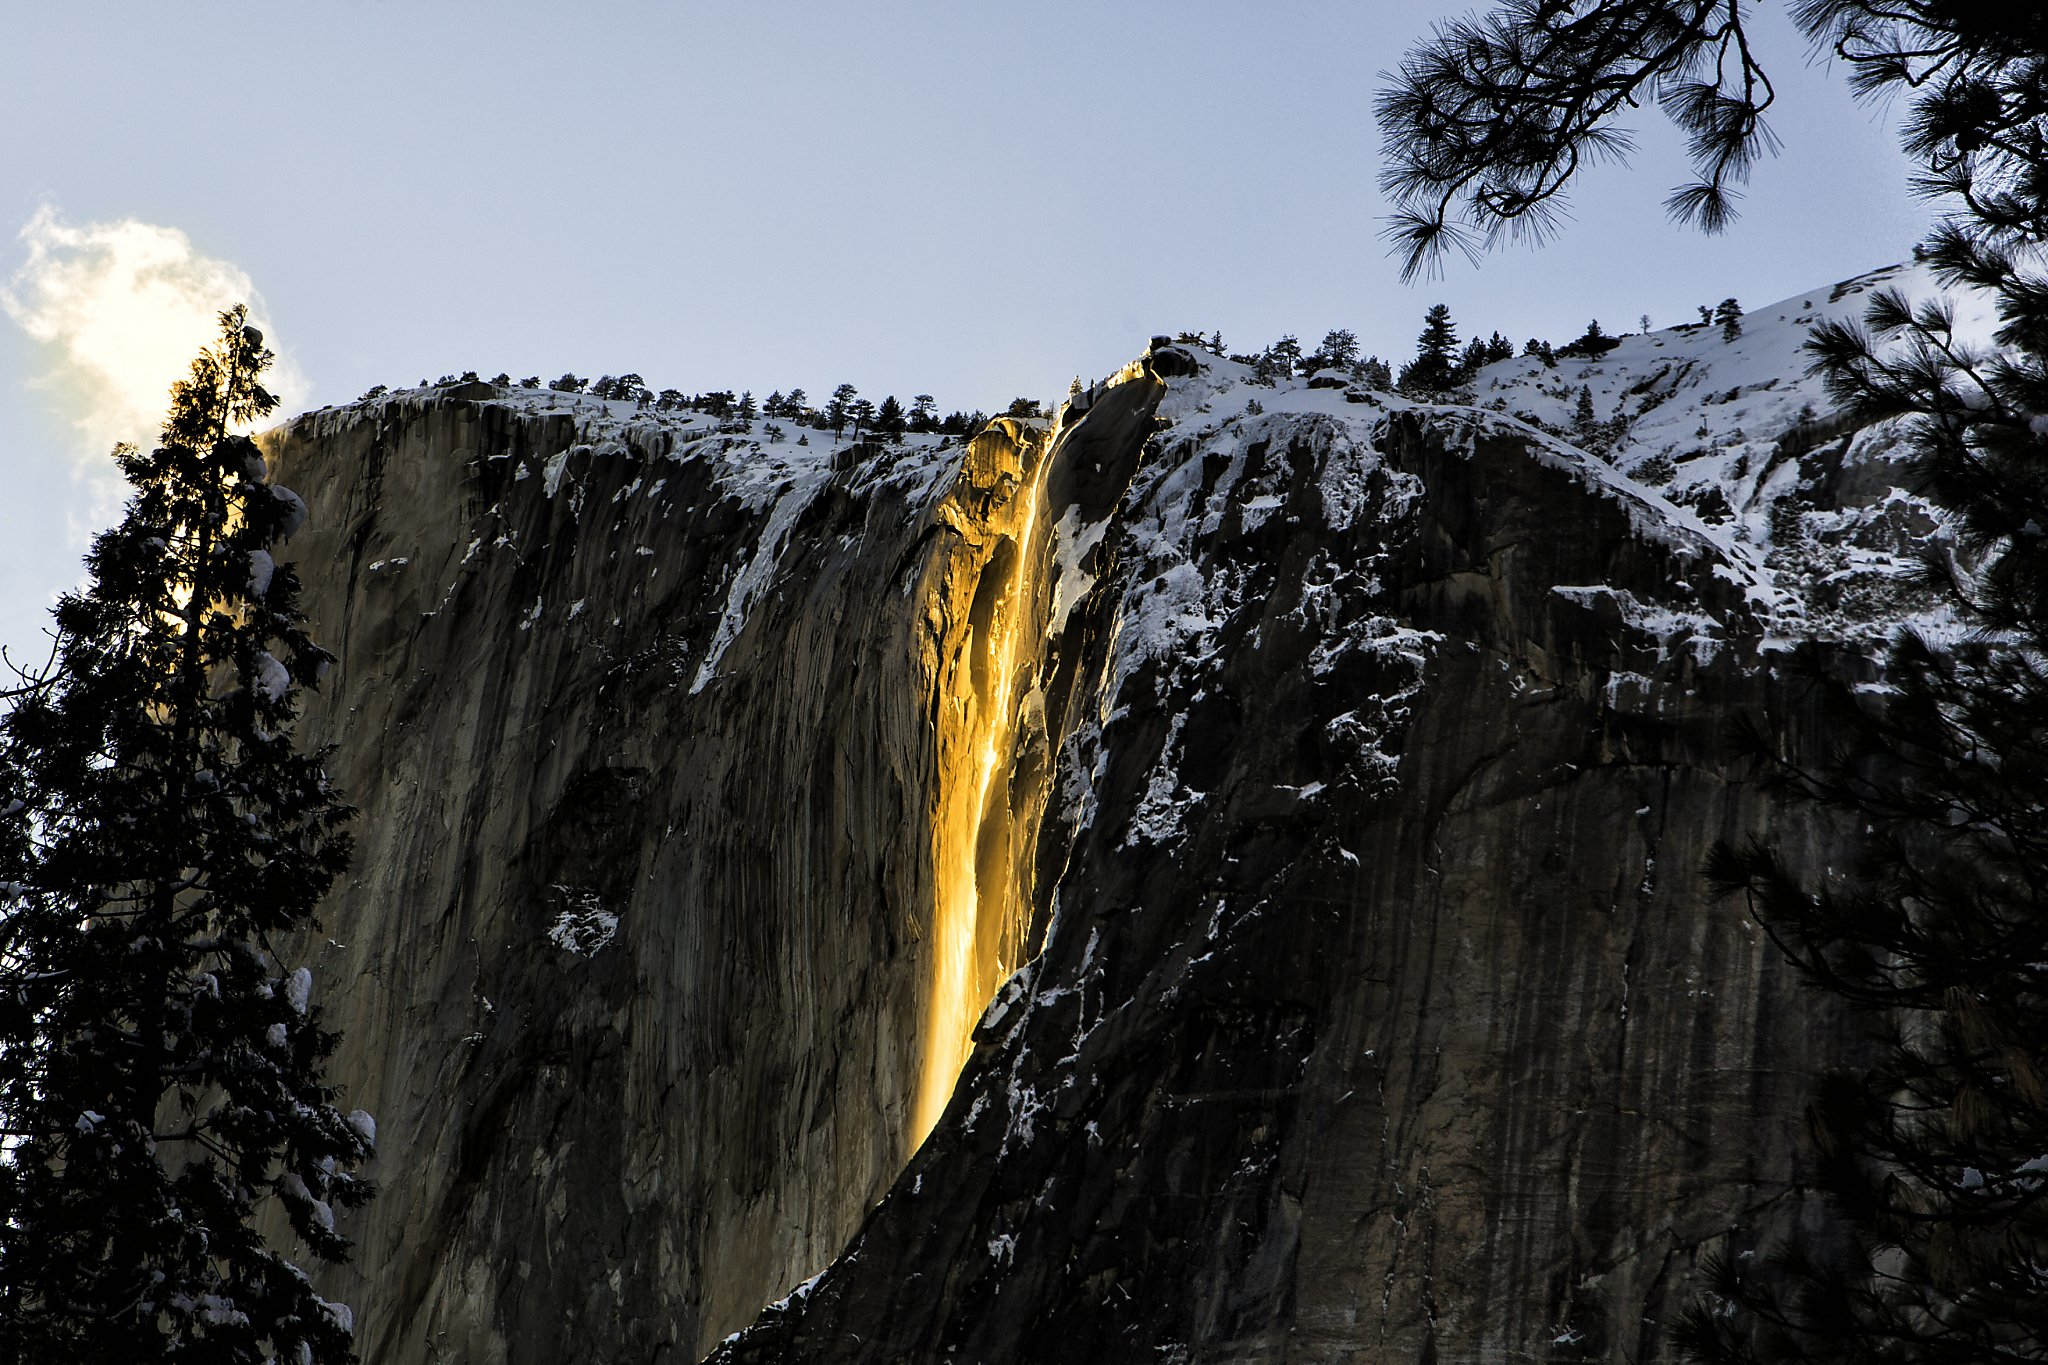 Yosemite's spectacular 'firefall' looks like a no-show this year